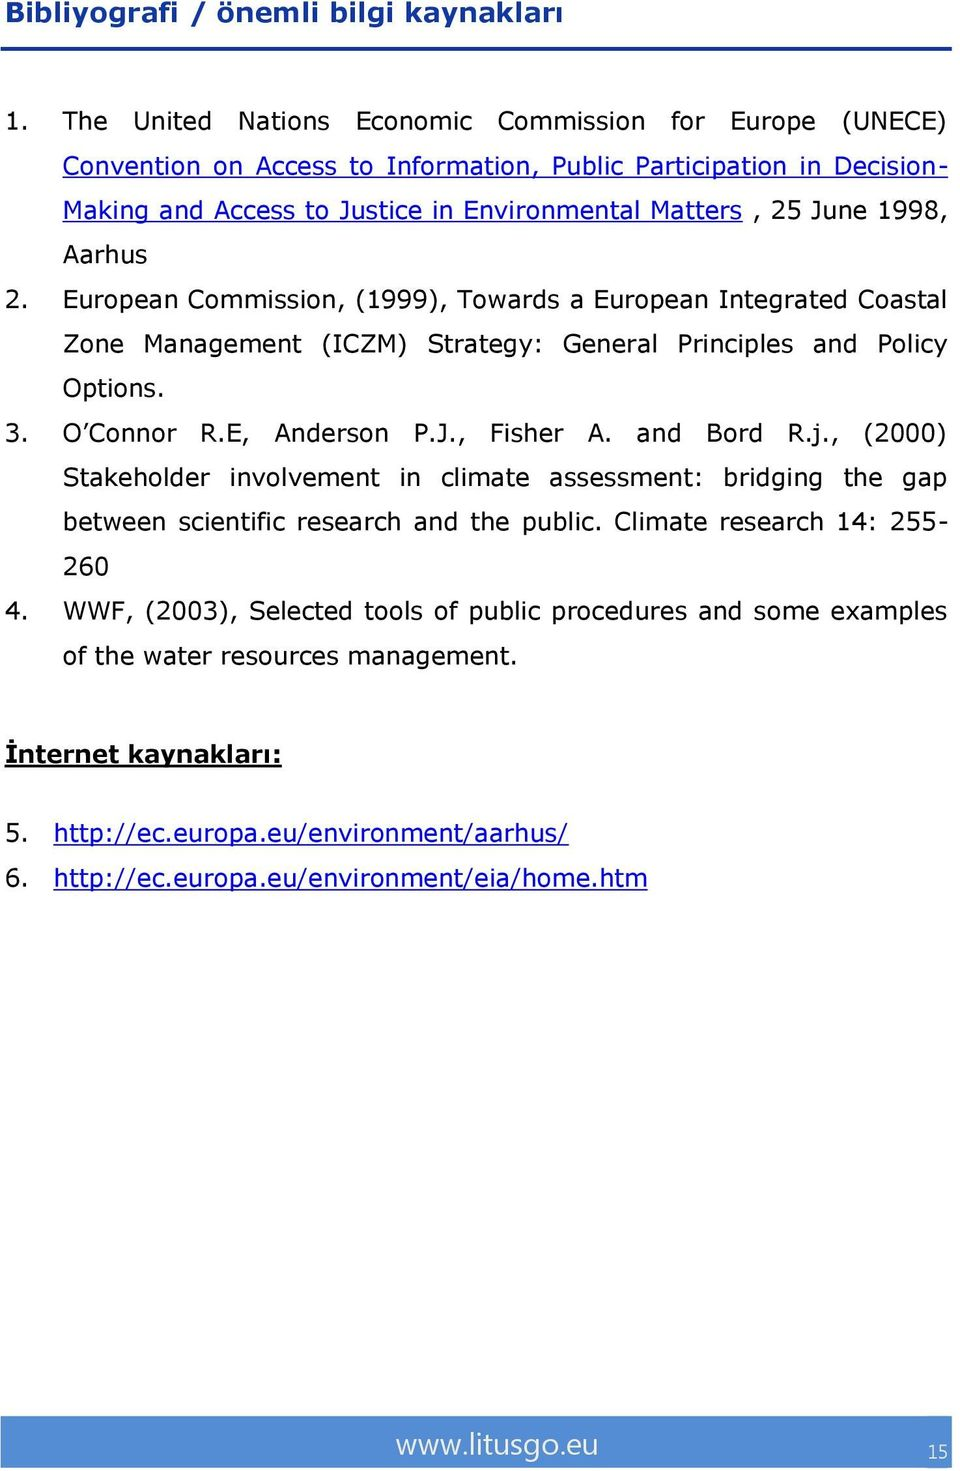 Aarhus 2. European Commission, (1999), Towards a European Integrated Coastal Zone Management (ICZM) Strategy: General Principles and Policy Options. 3. O Connor R.E, Anderson P.J., Fisher A.